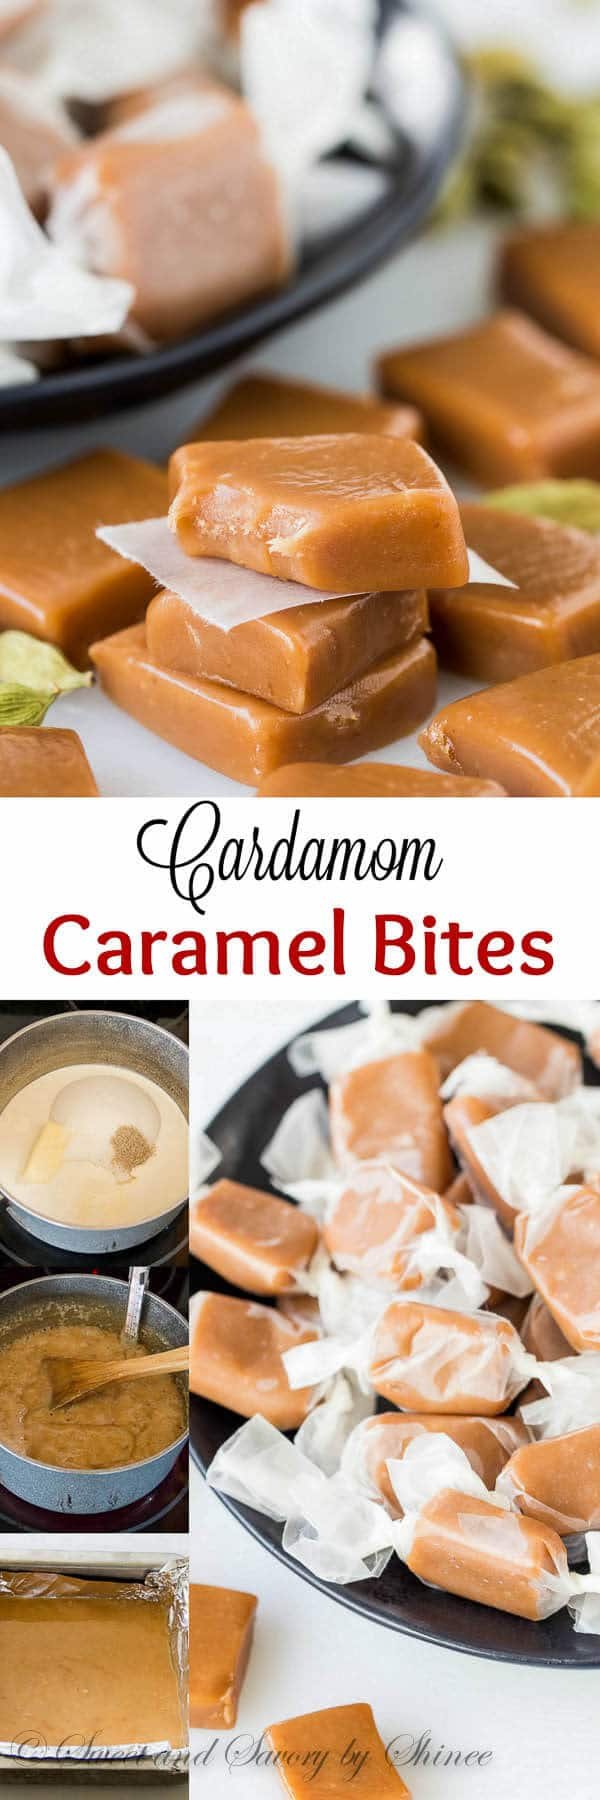 Buttery, soft and chewy caramel bites infused with hint of cardamom. So delightfully addicting! With step-by-step photos and lots of tips.